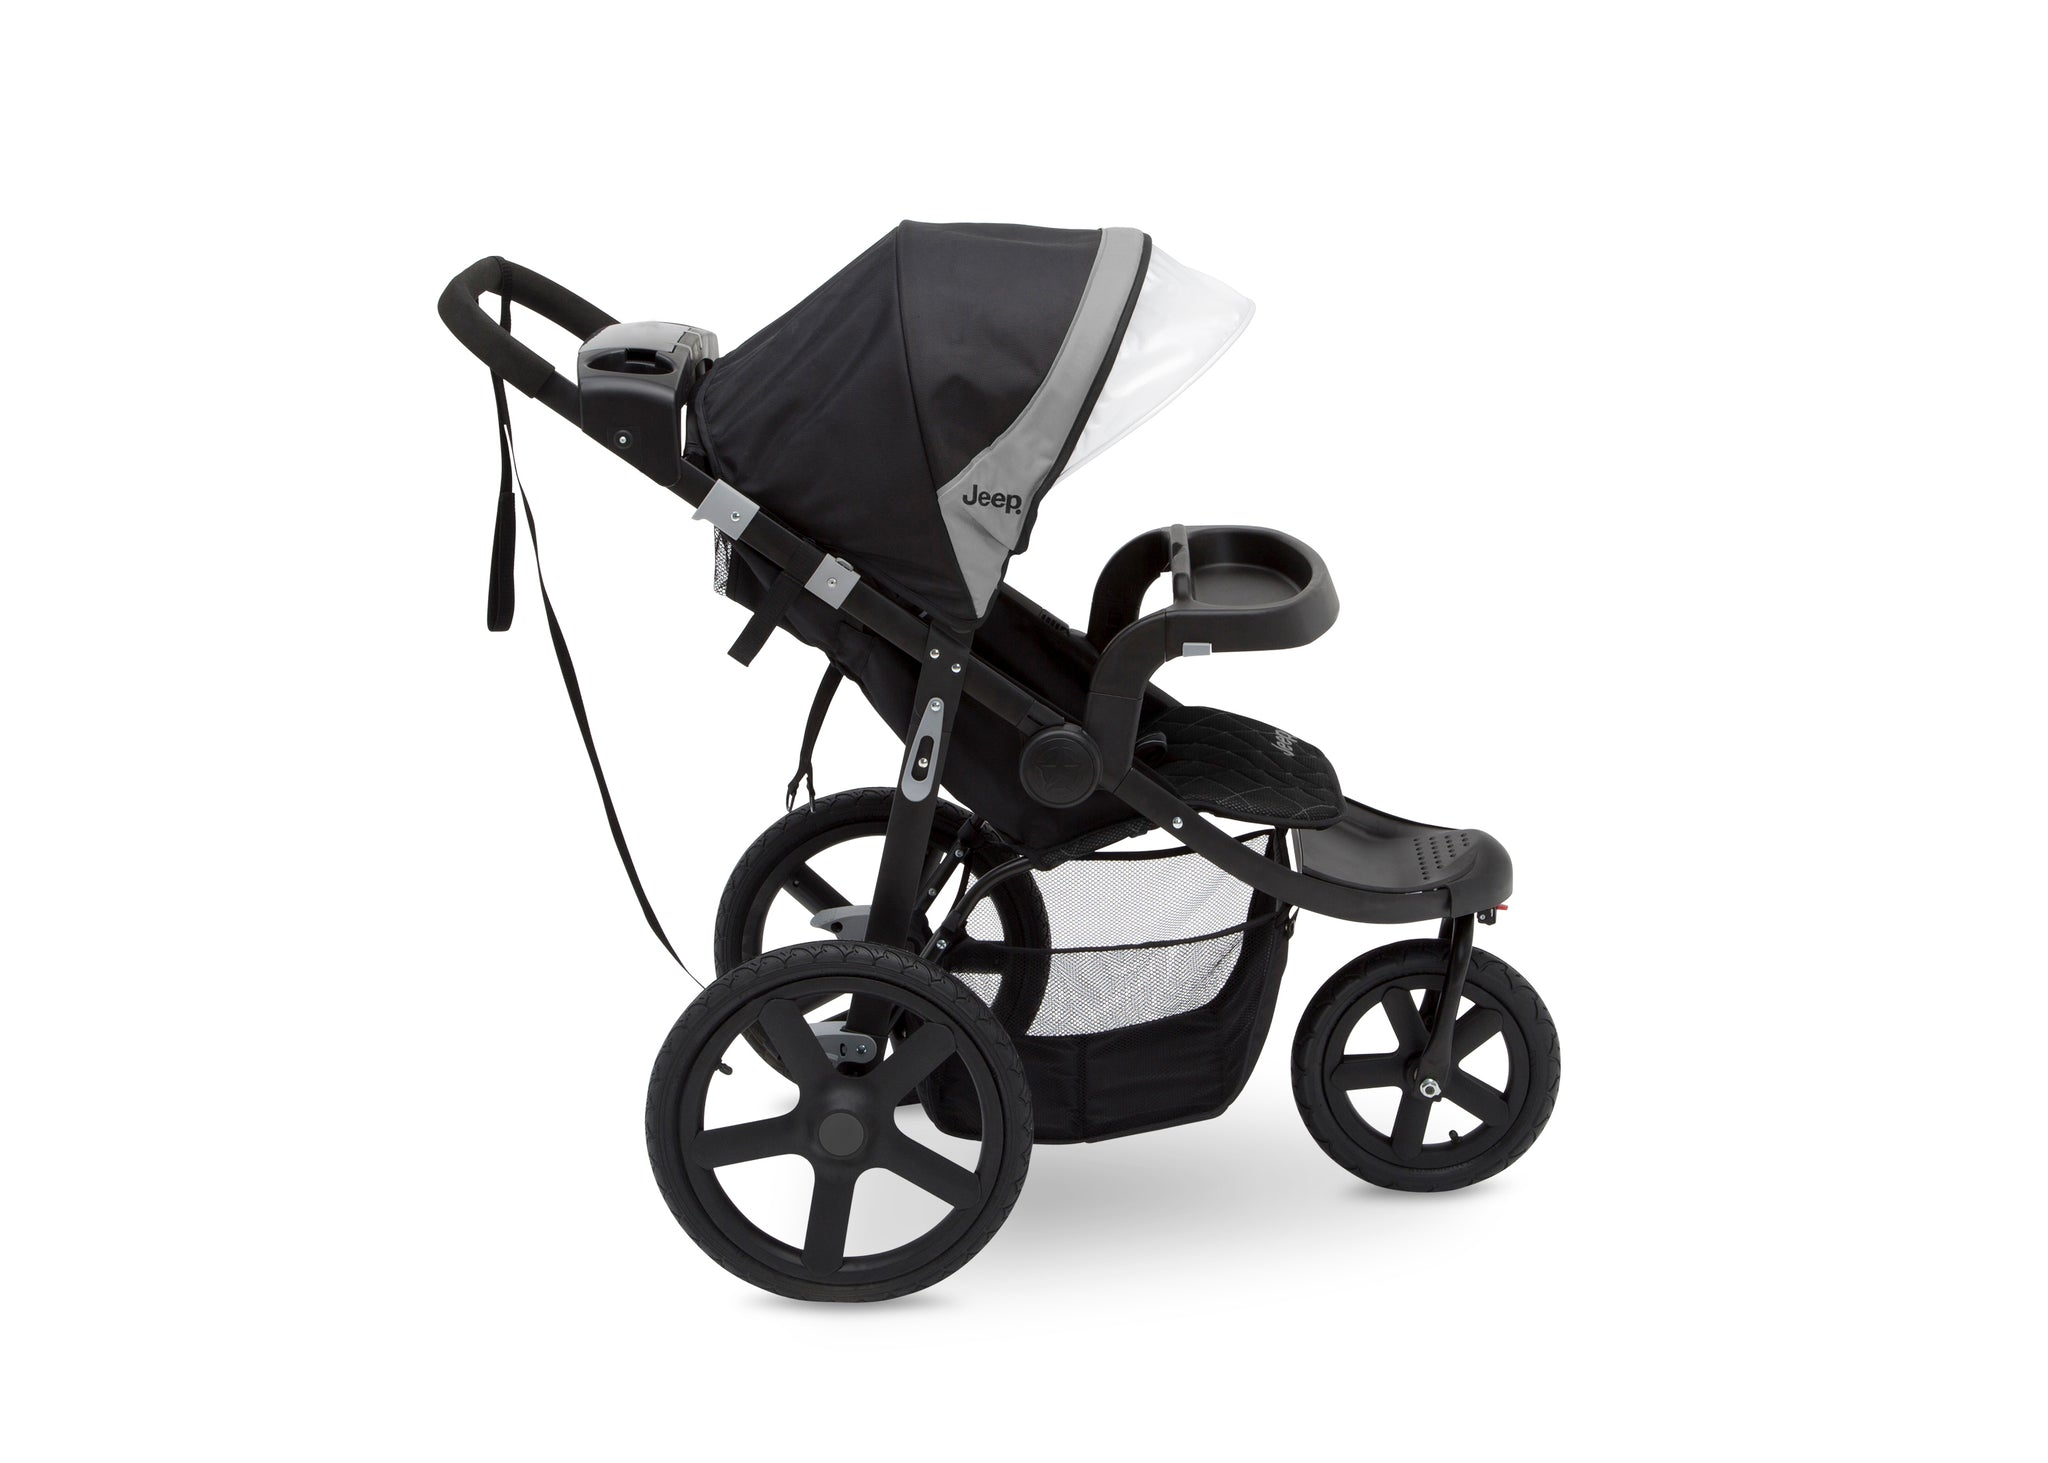 Jeep Adventure All Terrain Jogger Stroller by Delta Children, Charcoal Tracks (0251), with multi-position reclining seat